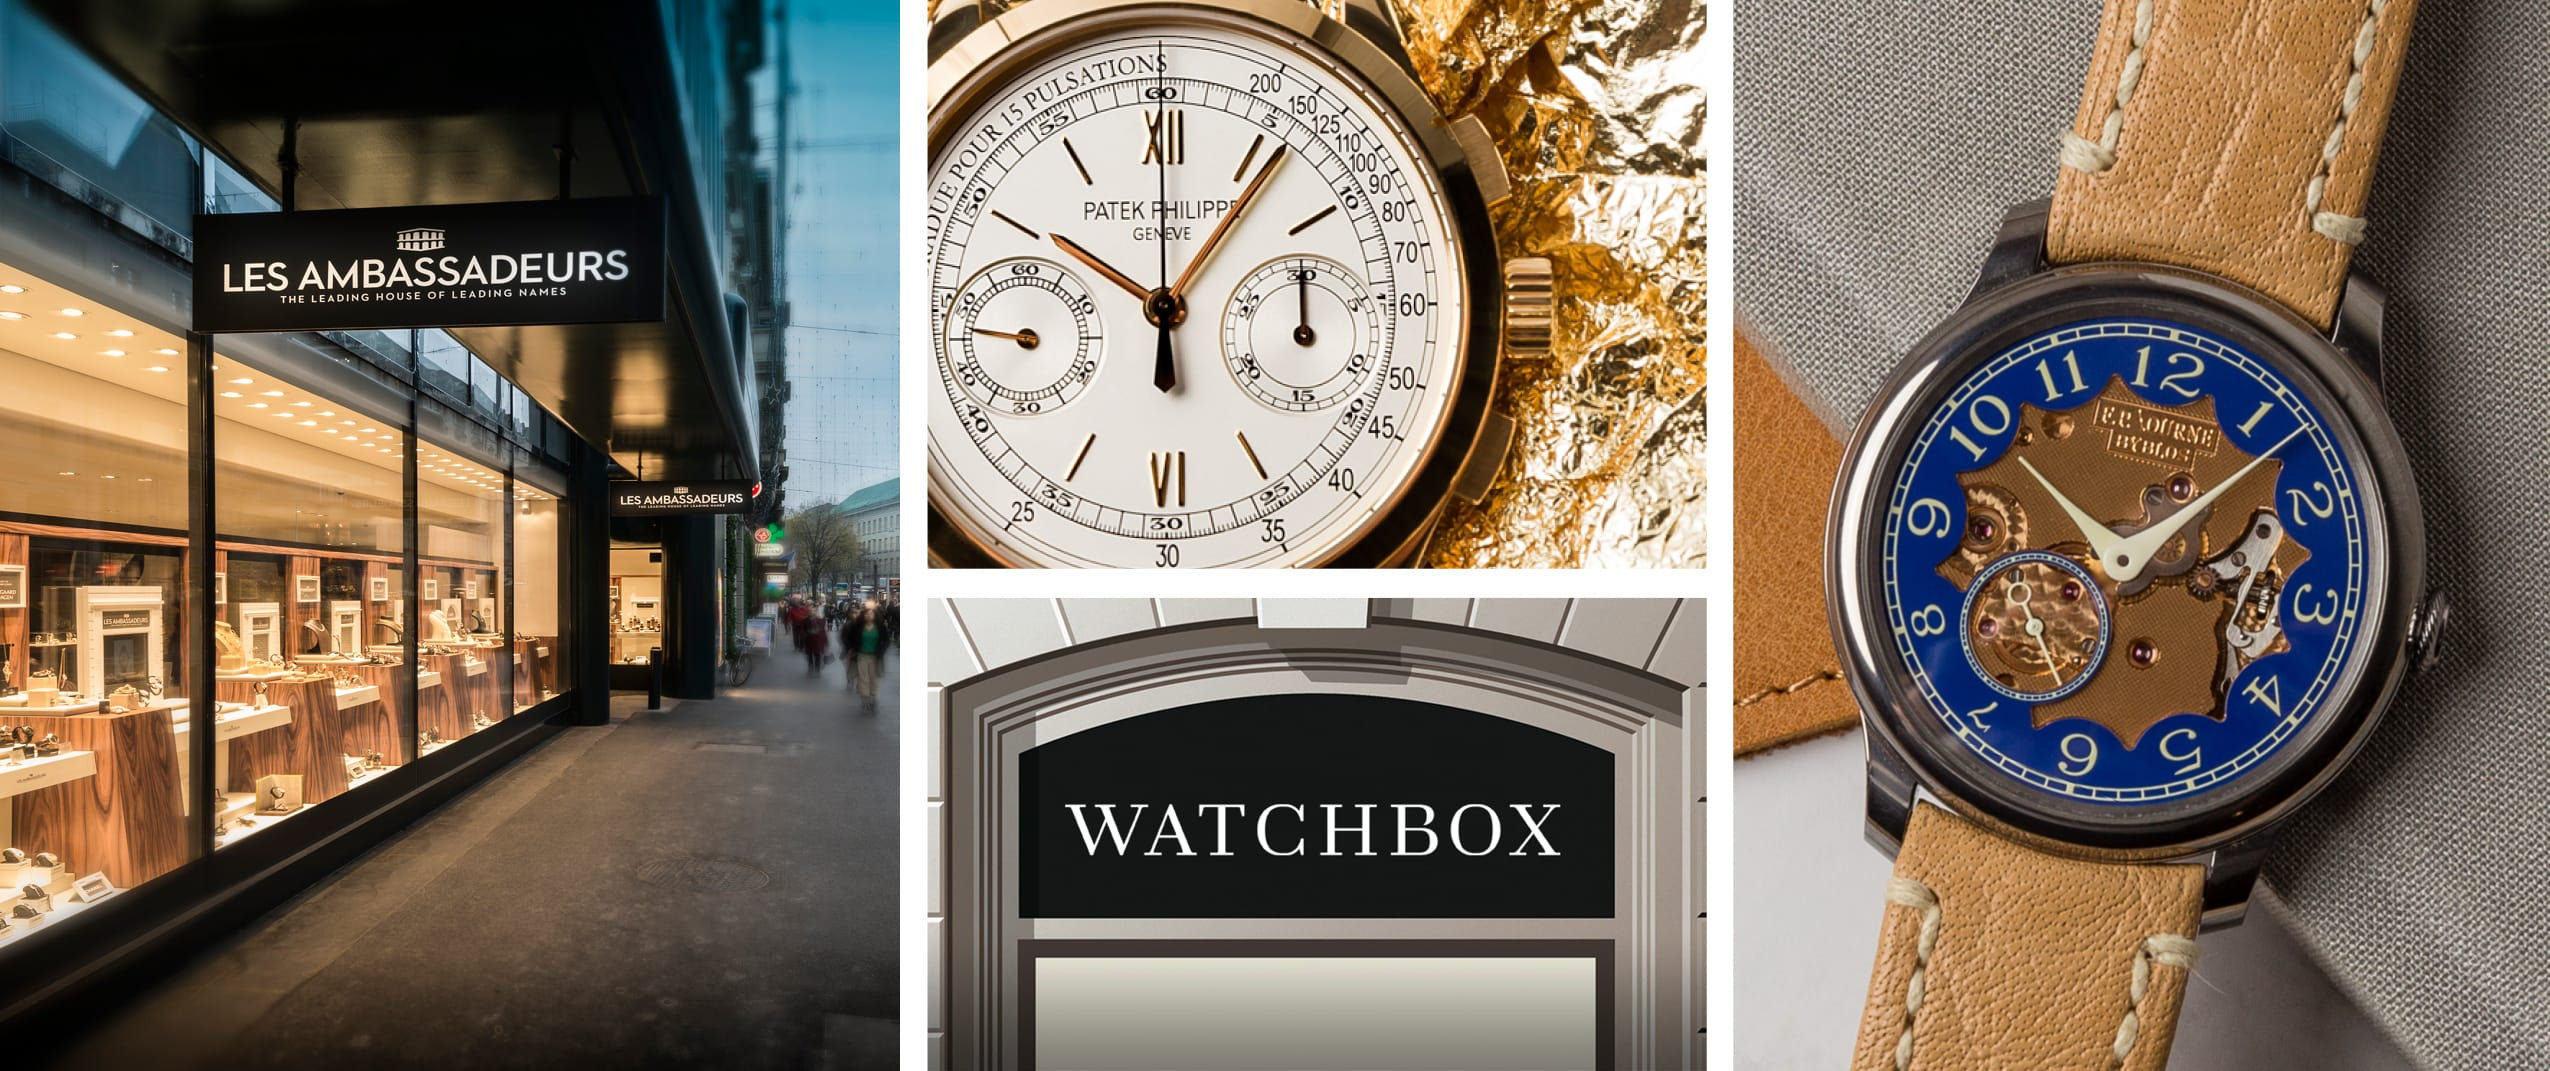 WatchBox Expands Global Footprint in Partnership with Leading Swiss Watch Retailer Les Ambassadeurs